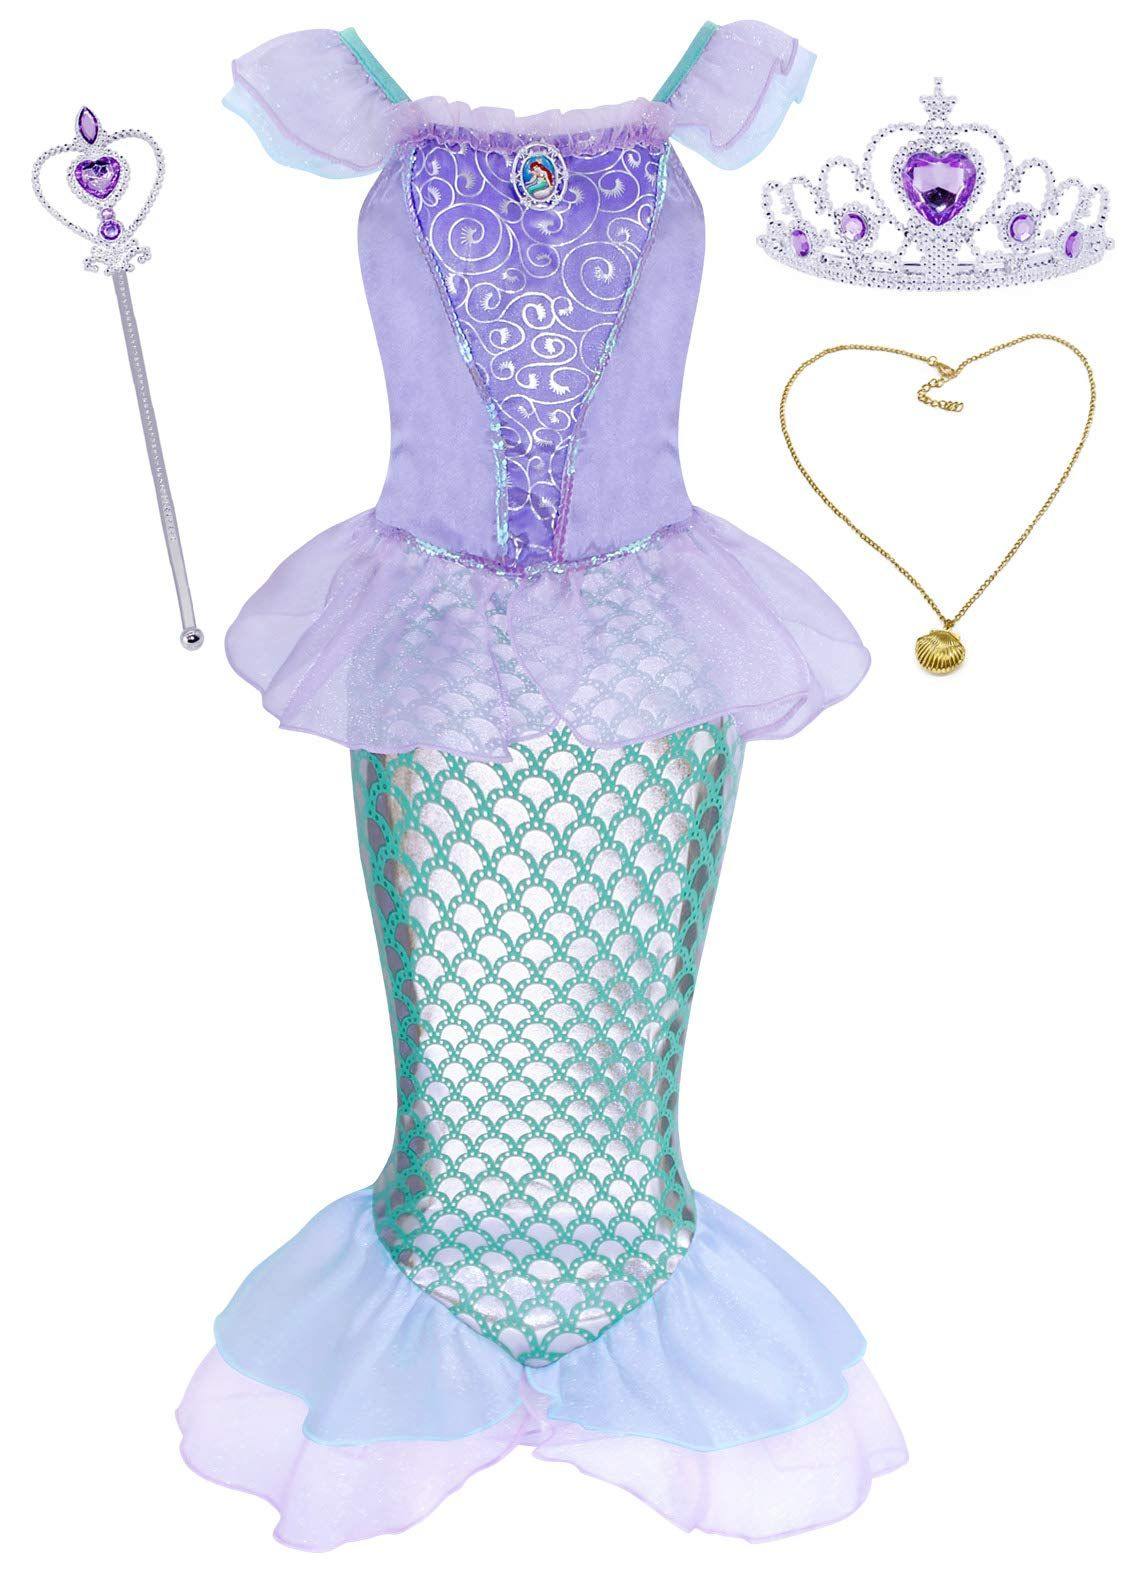 AmzBarley Girls Princess Coronation Dress Halloween Costume Dress up Birthday Party Outfits with Accessories